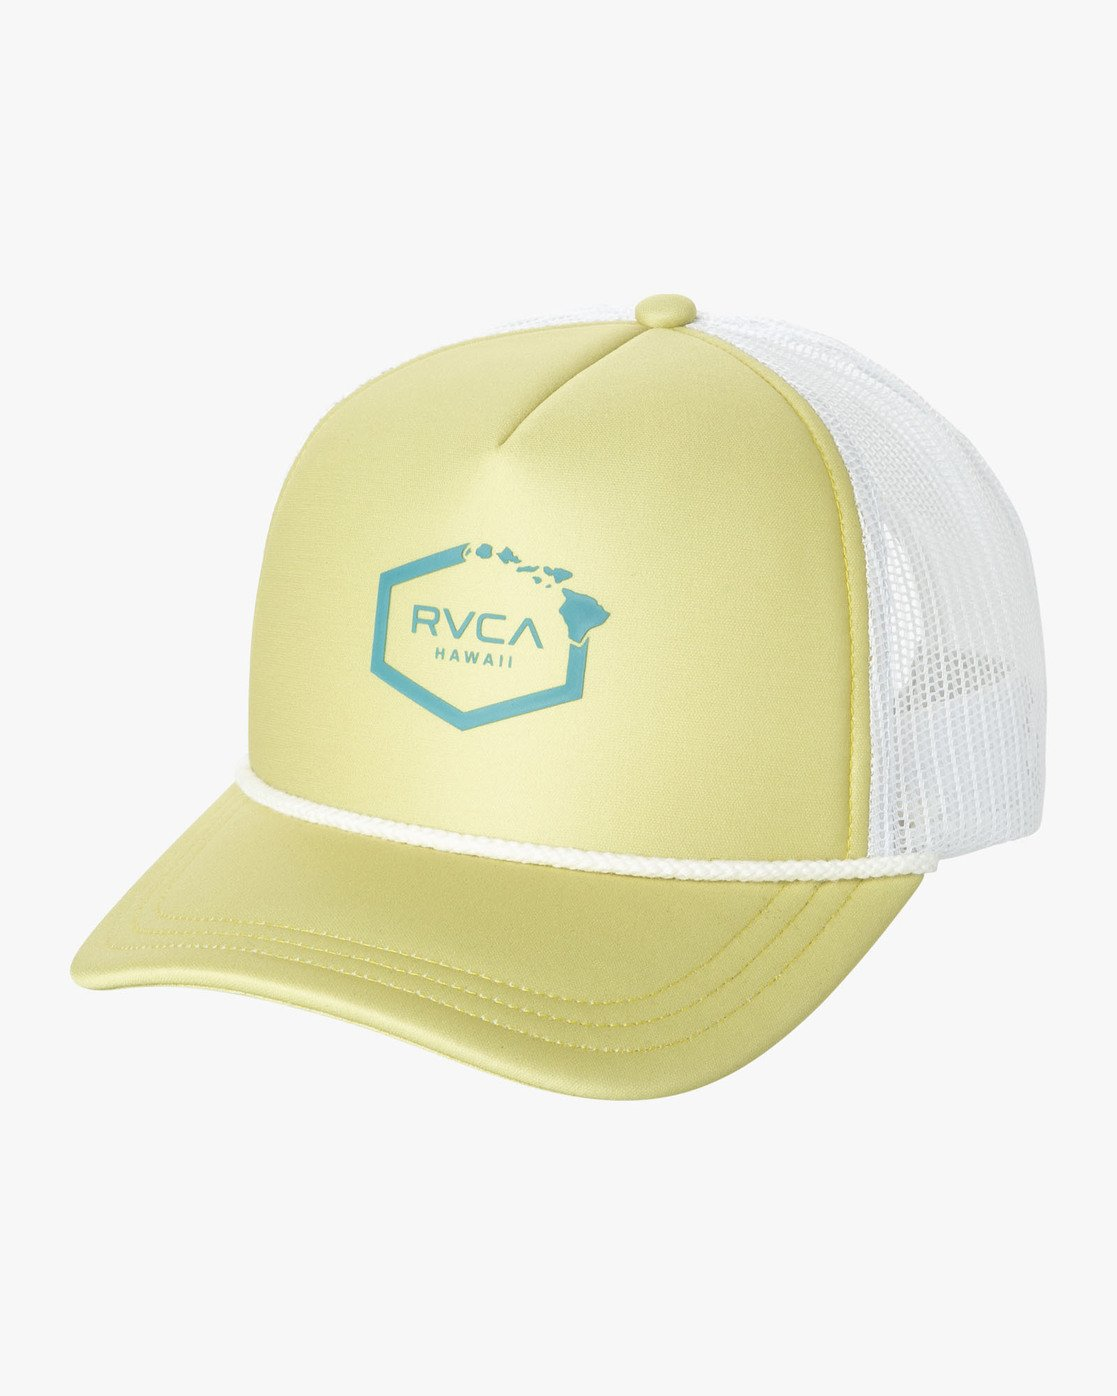 0 ISLAND HEX TRUCKER Yellow WAHW1RIH RVCA